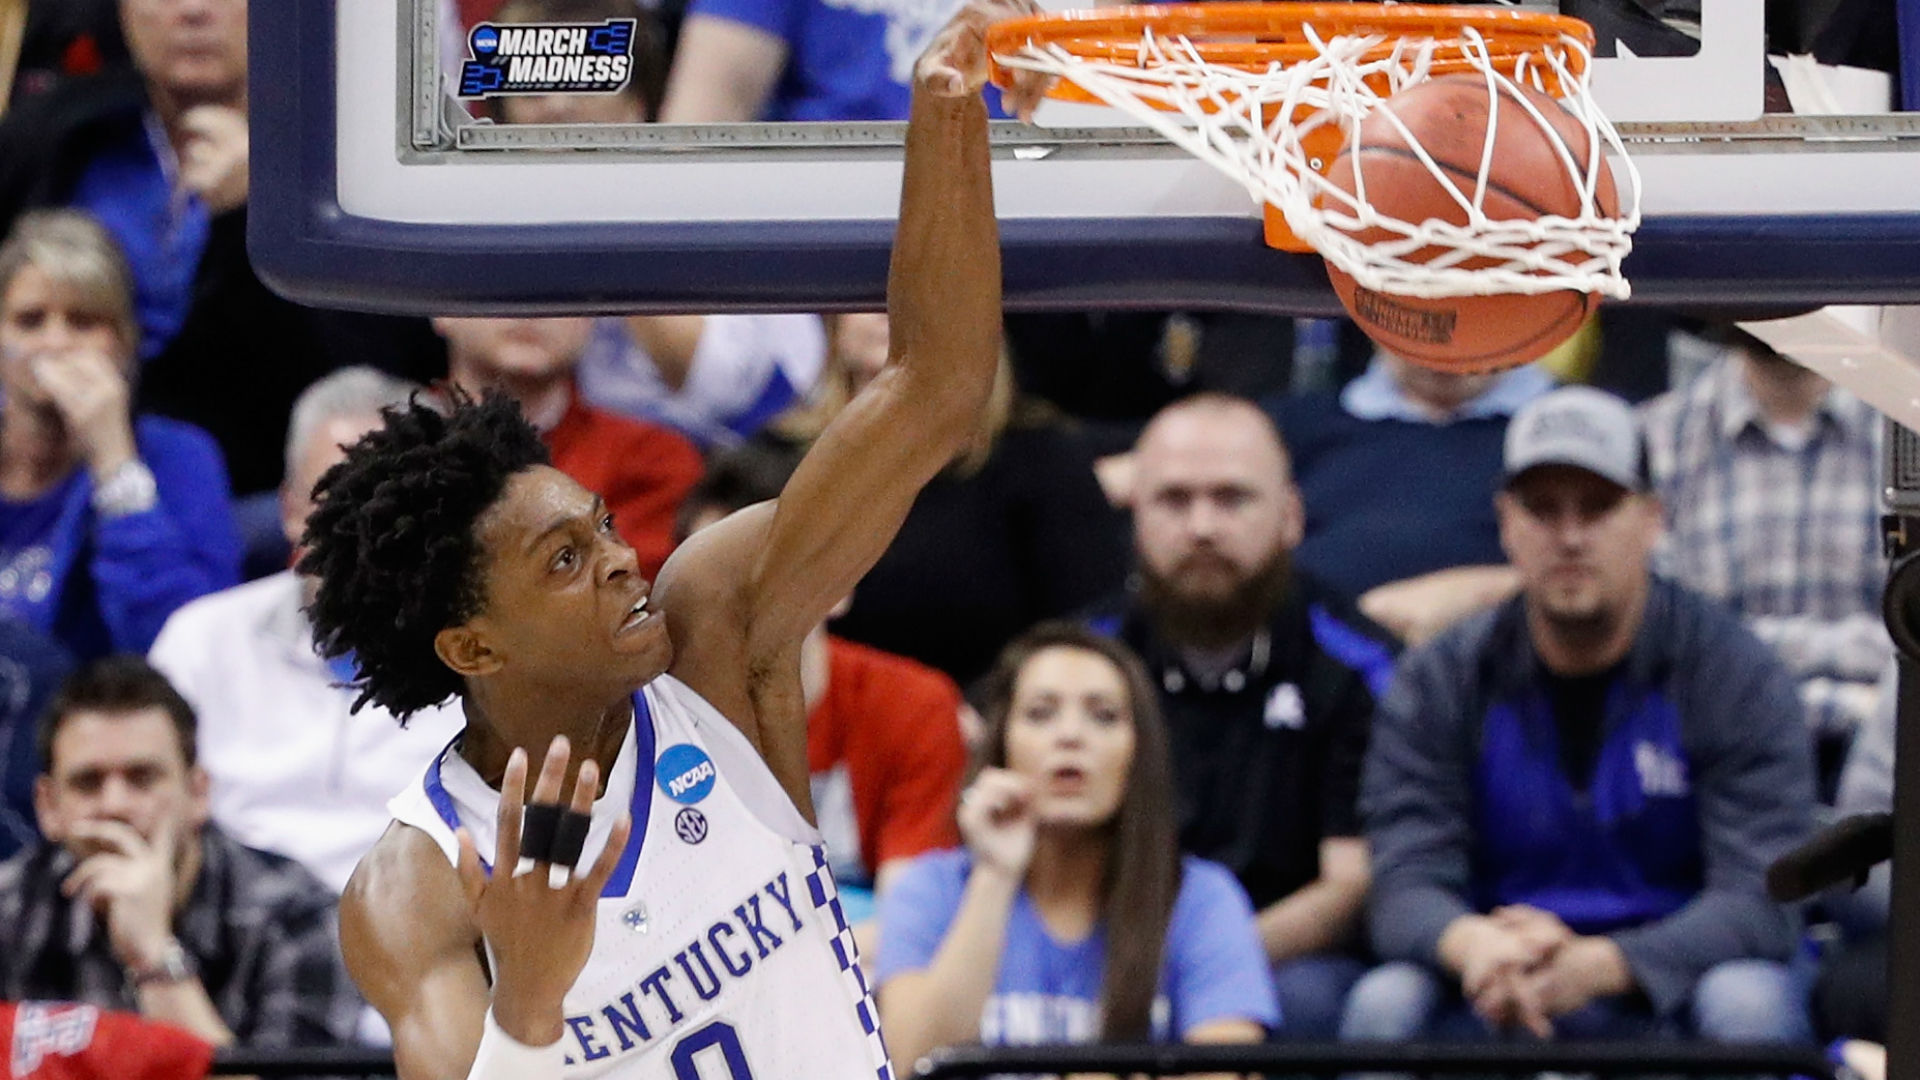 De'Aaron Fox Gives Emotional Interview After Loss To UNC